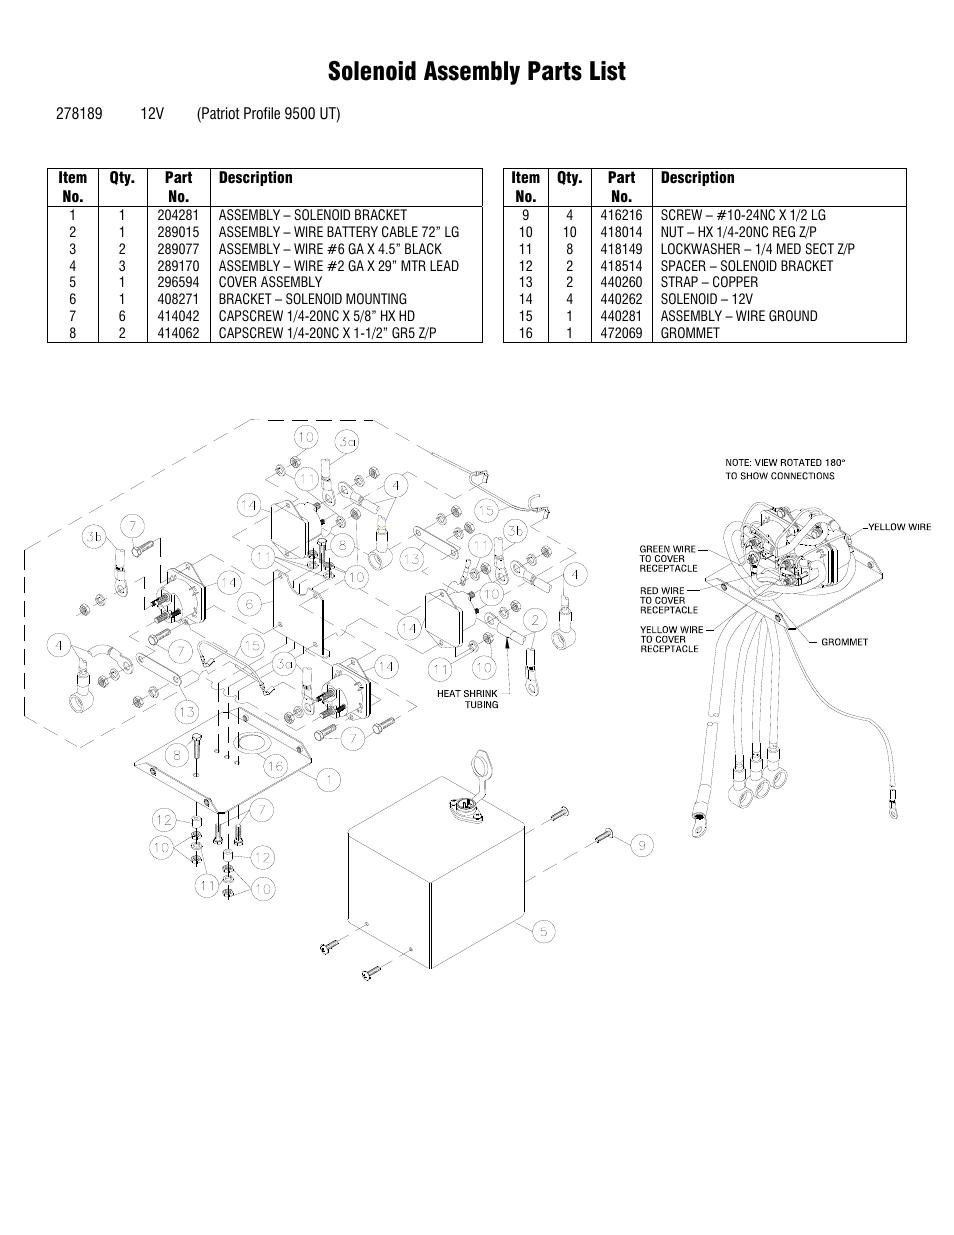 solenoid assembly parts list ramsey winch patriot. Black Bedroom Furniture Sets. Home Design Ideas